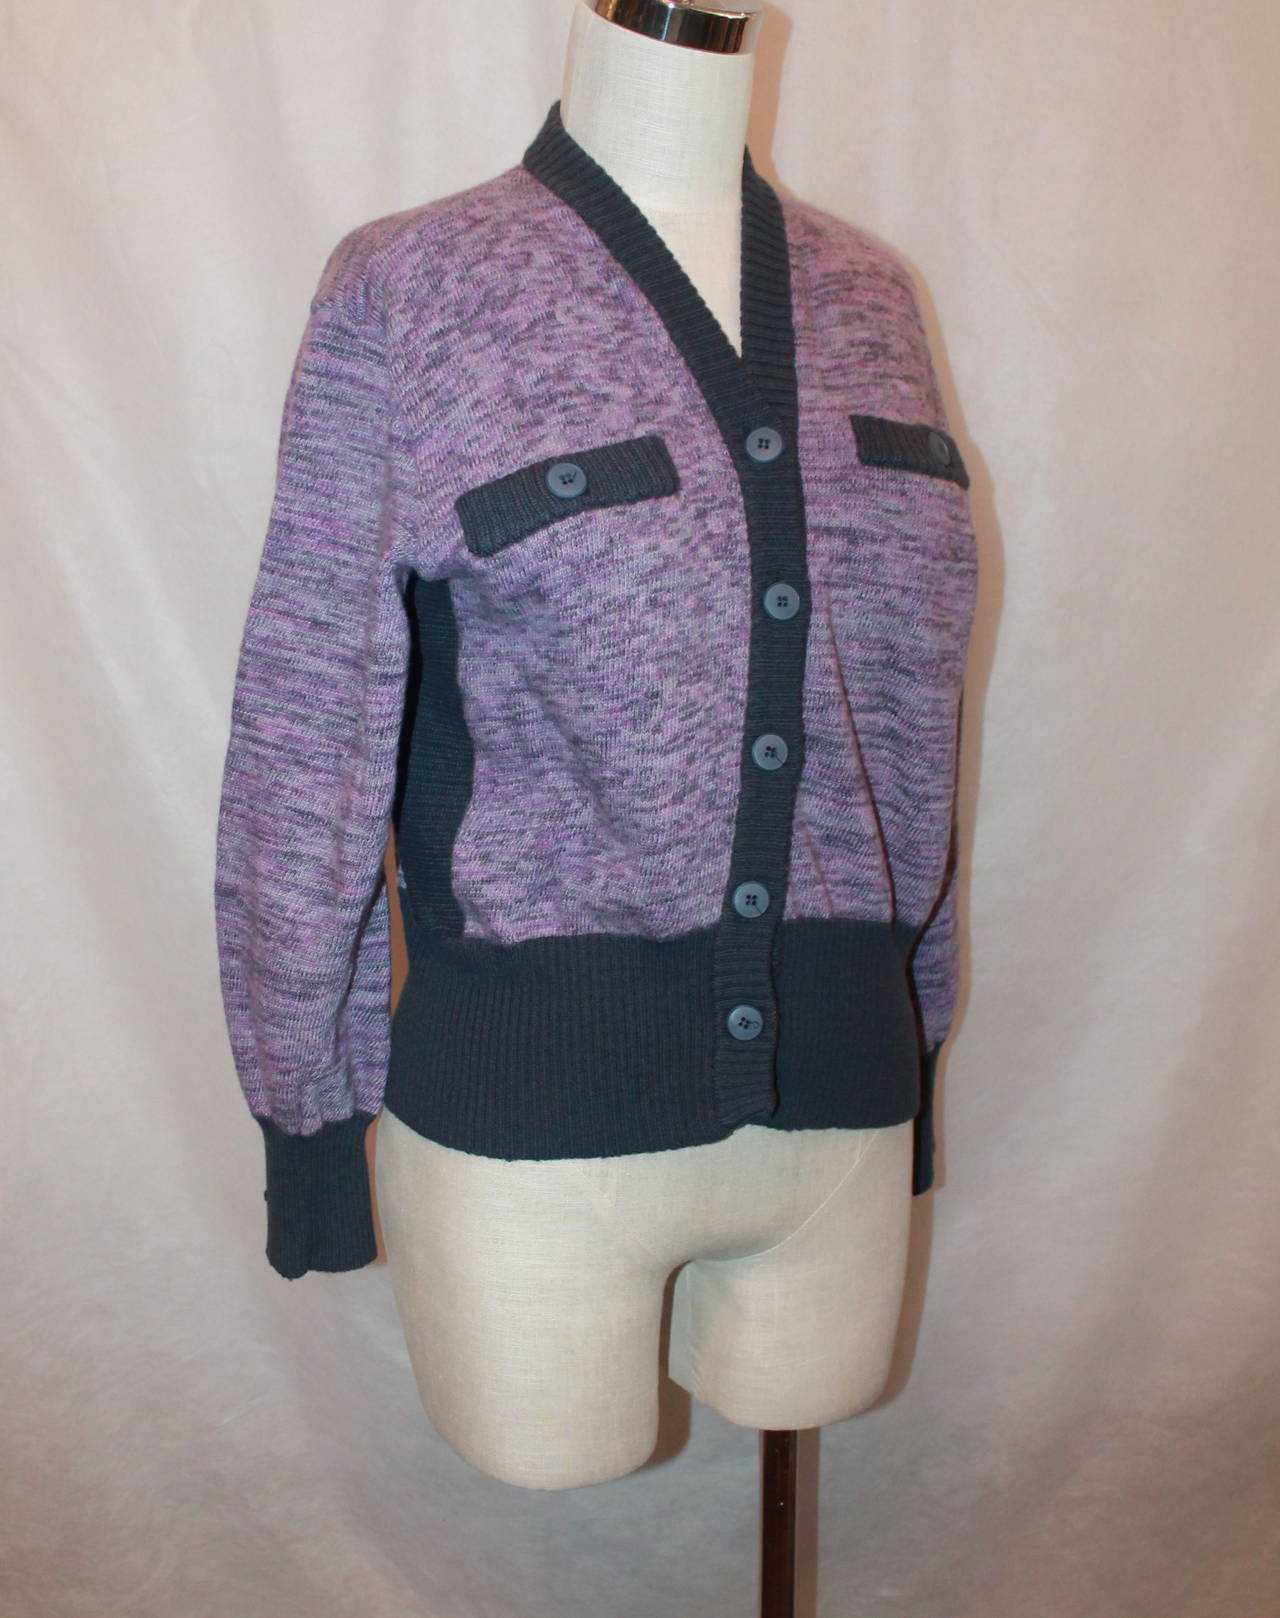 5af9439f96 YSL 1960 s Vintage Lavender   Charcoal Grey Cardigan - 38. This sweater is  in very